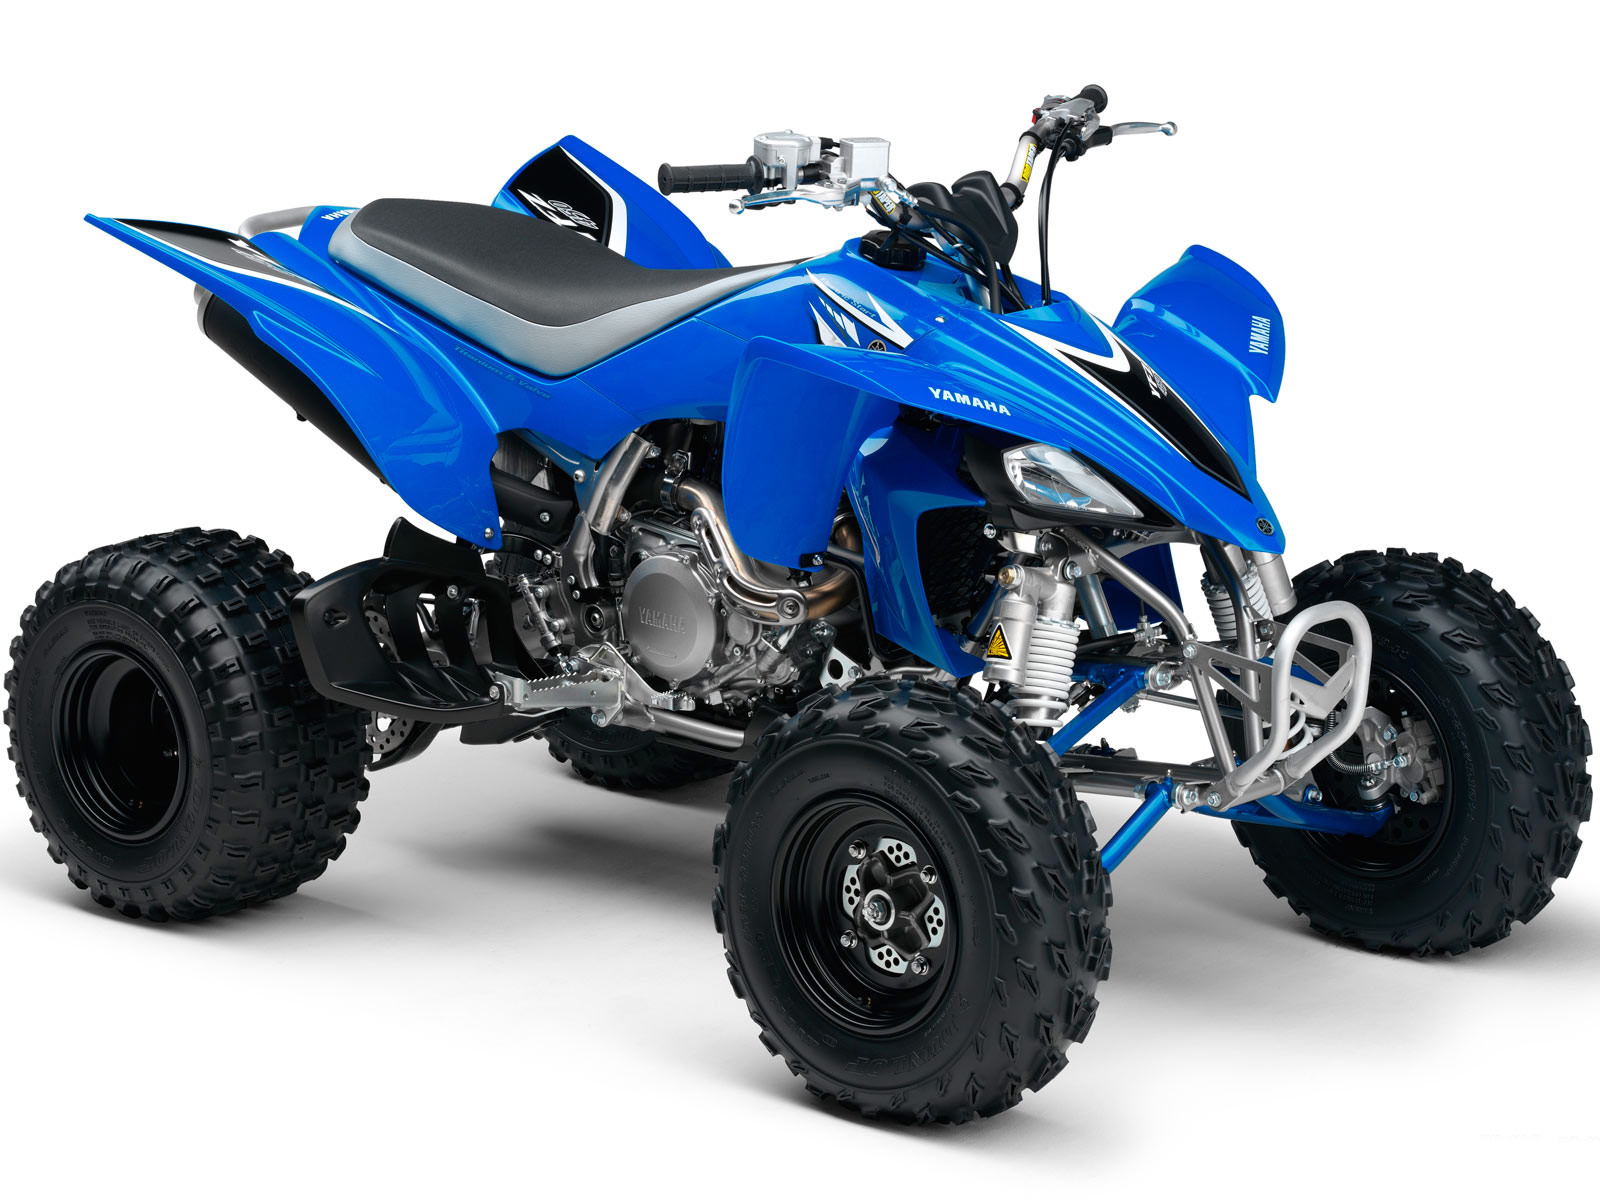 2008 yamaha yfz 450 atv pictures specs accident lawyers info for Yamaha 350 atv